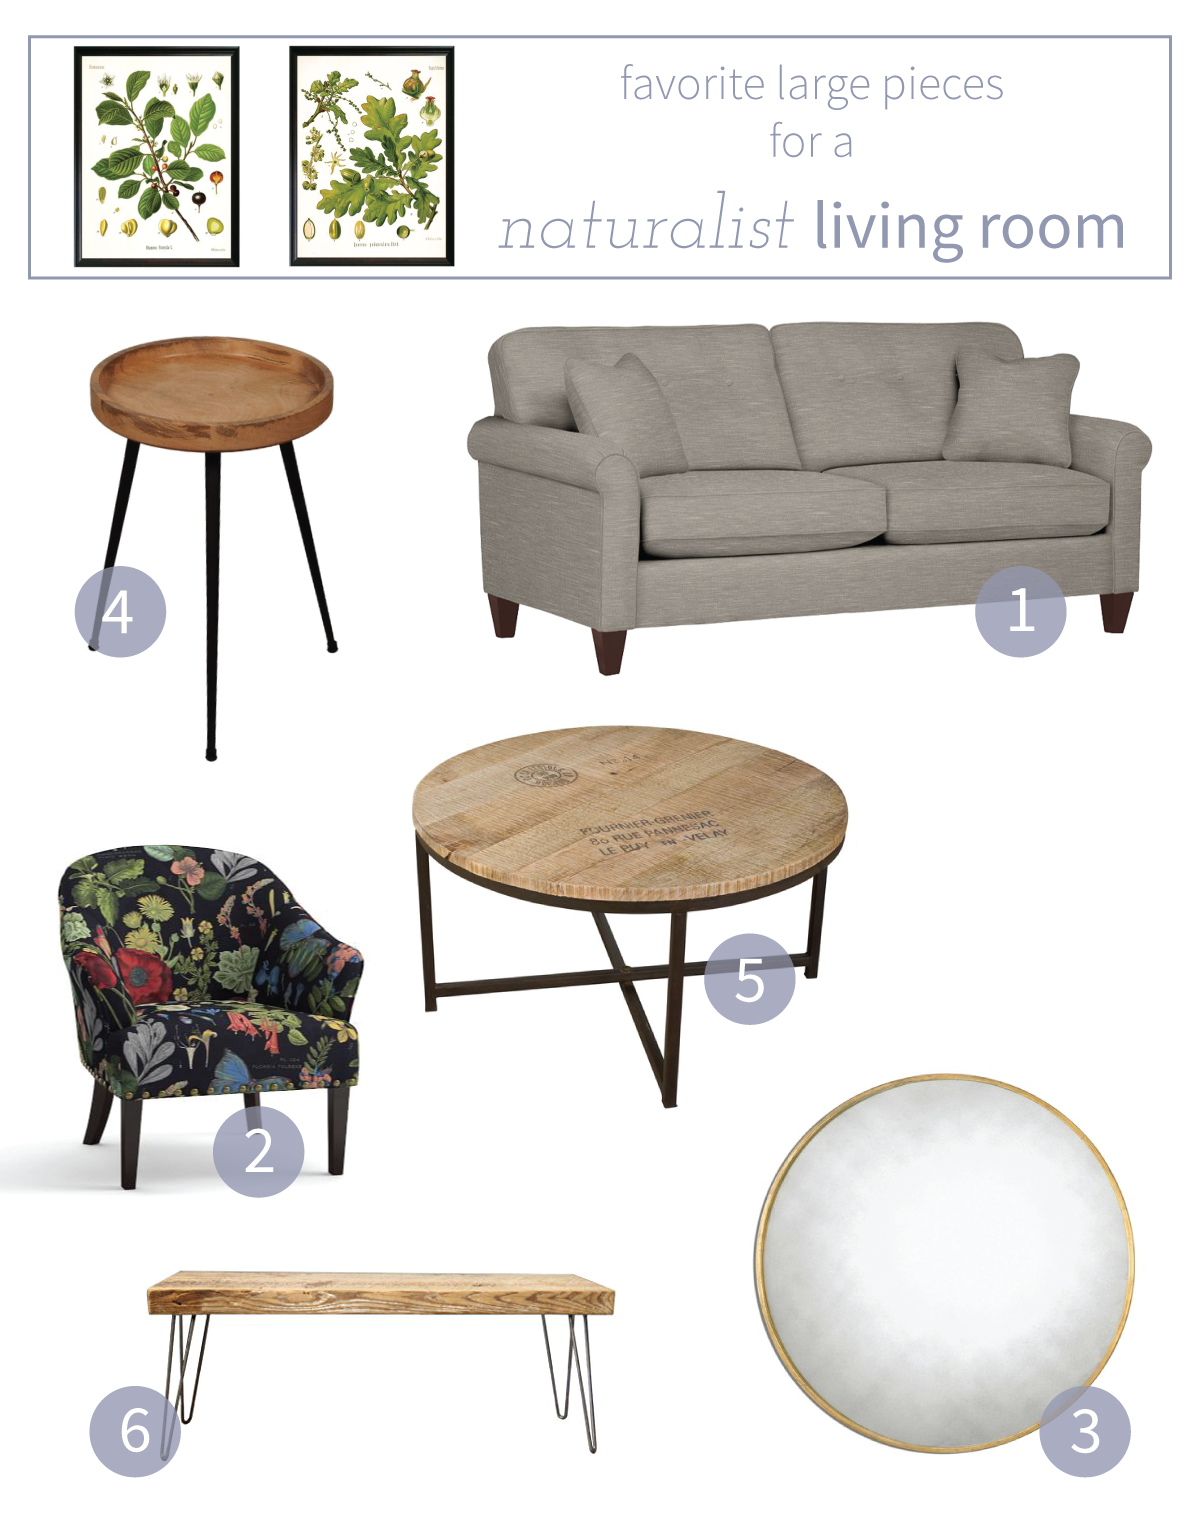 These are some of my favorite large-scale pieces for our naturalist living room makeover.